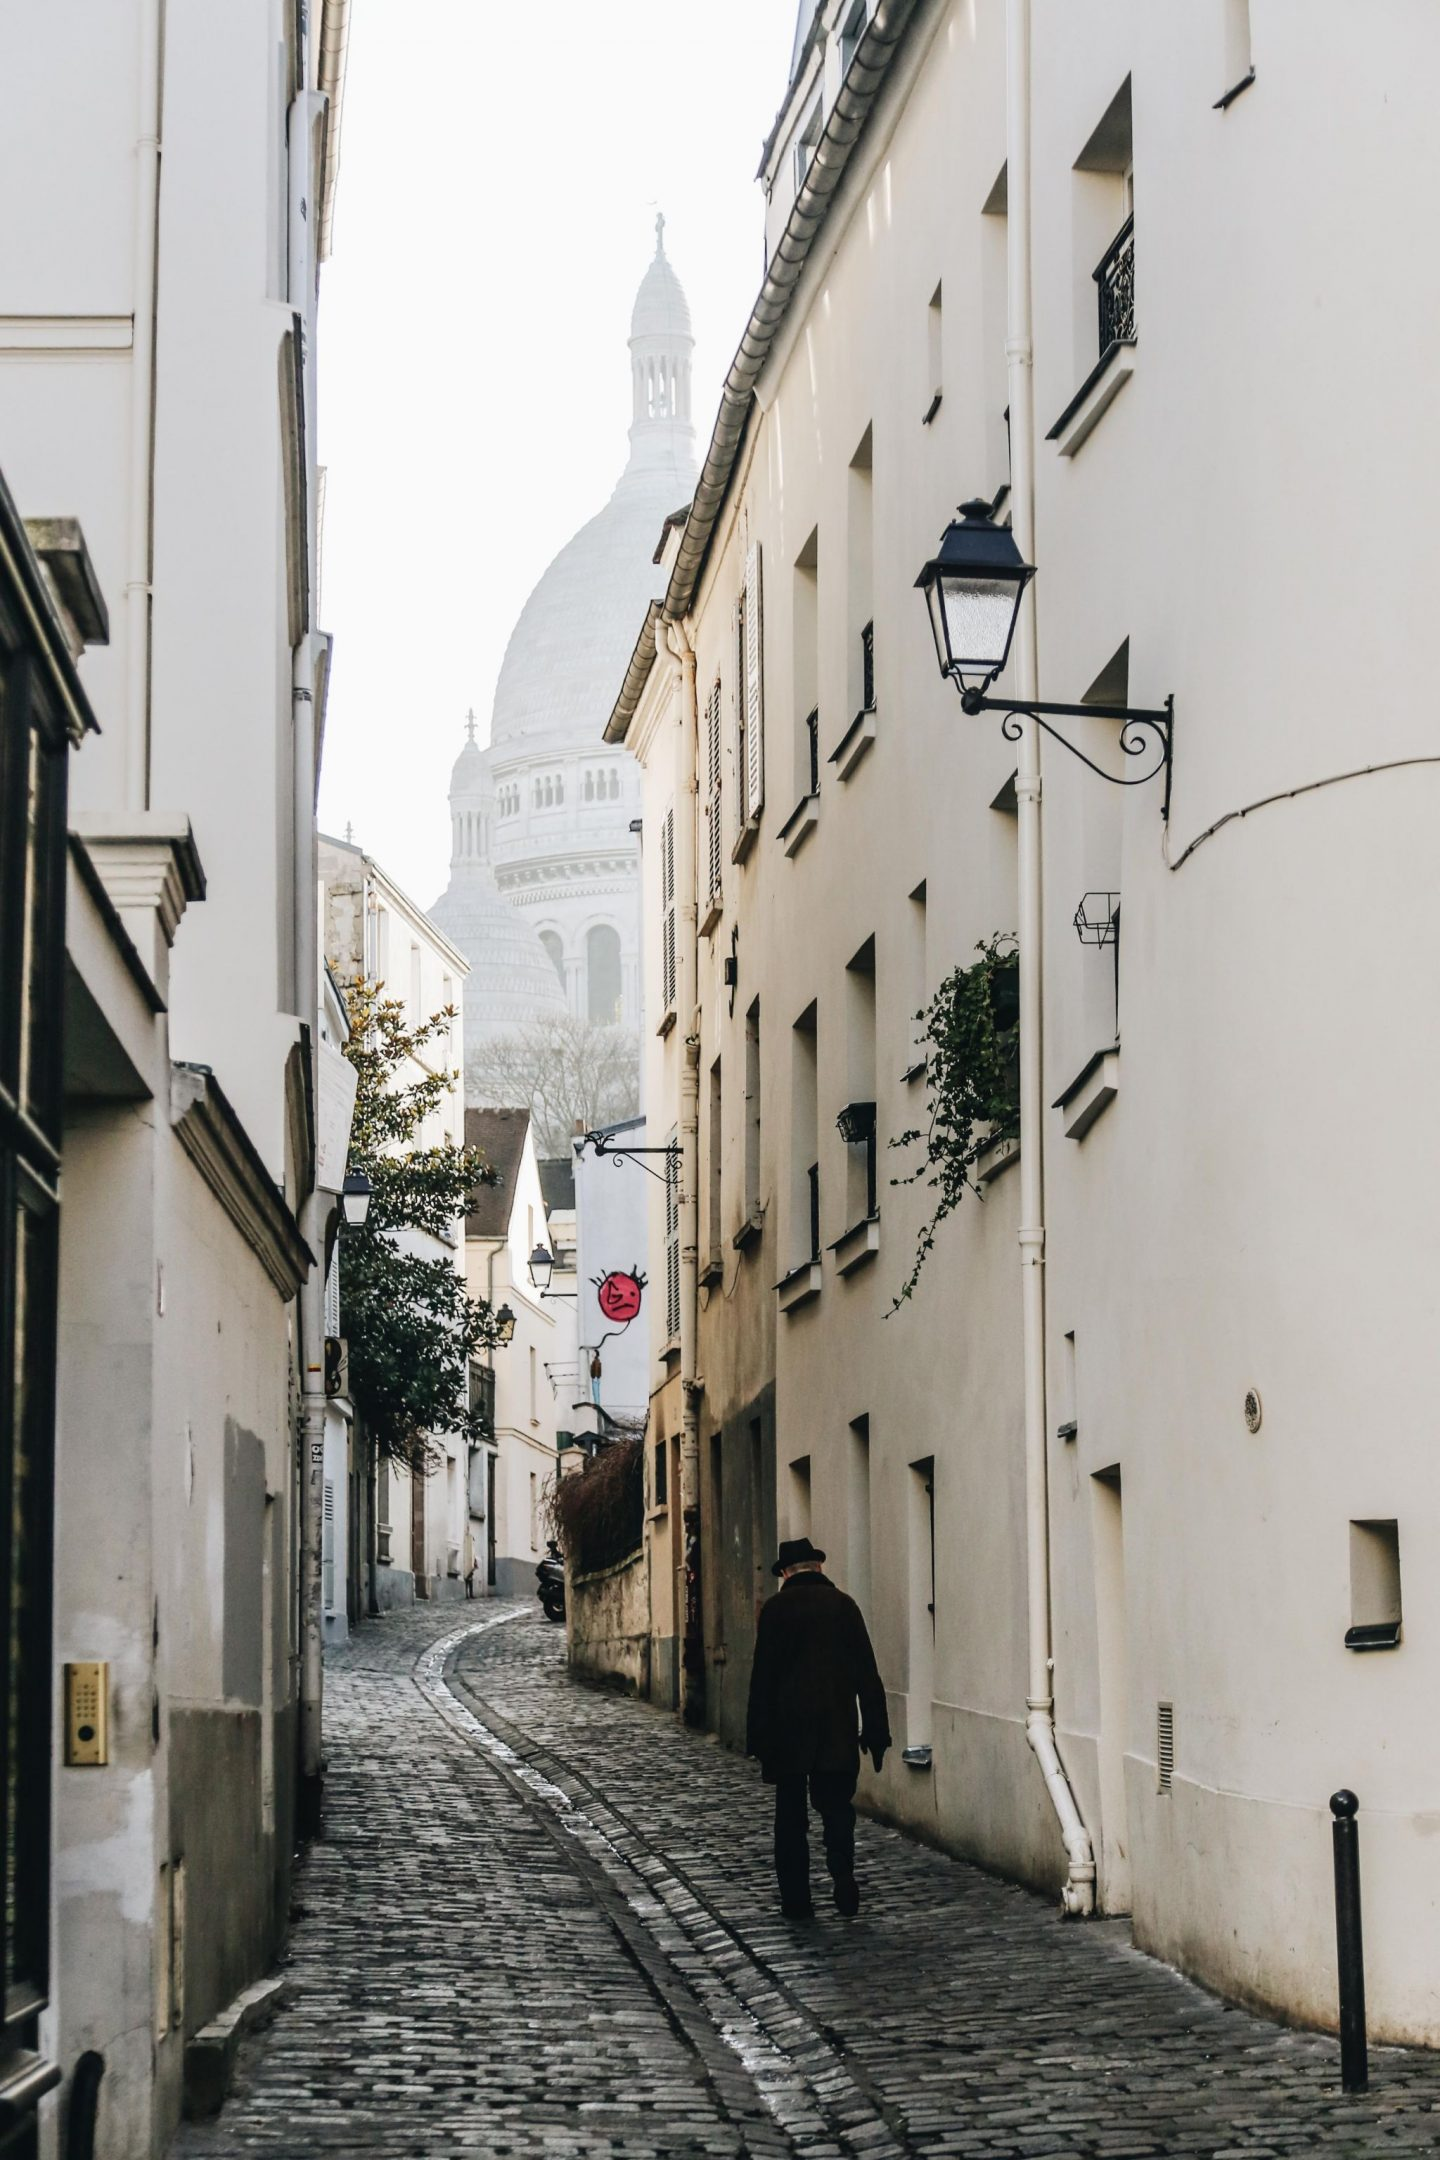 guide, paris, beginners, sacré-coeur, building, street